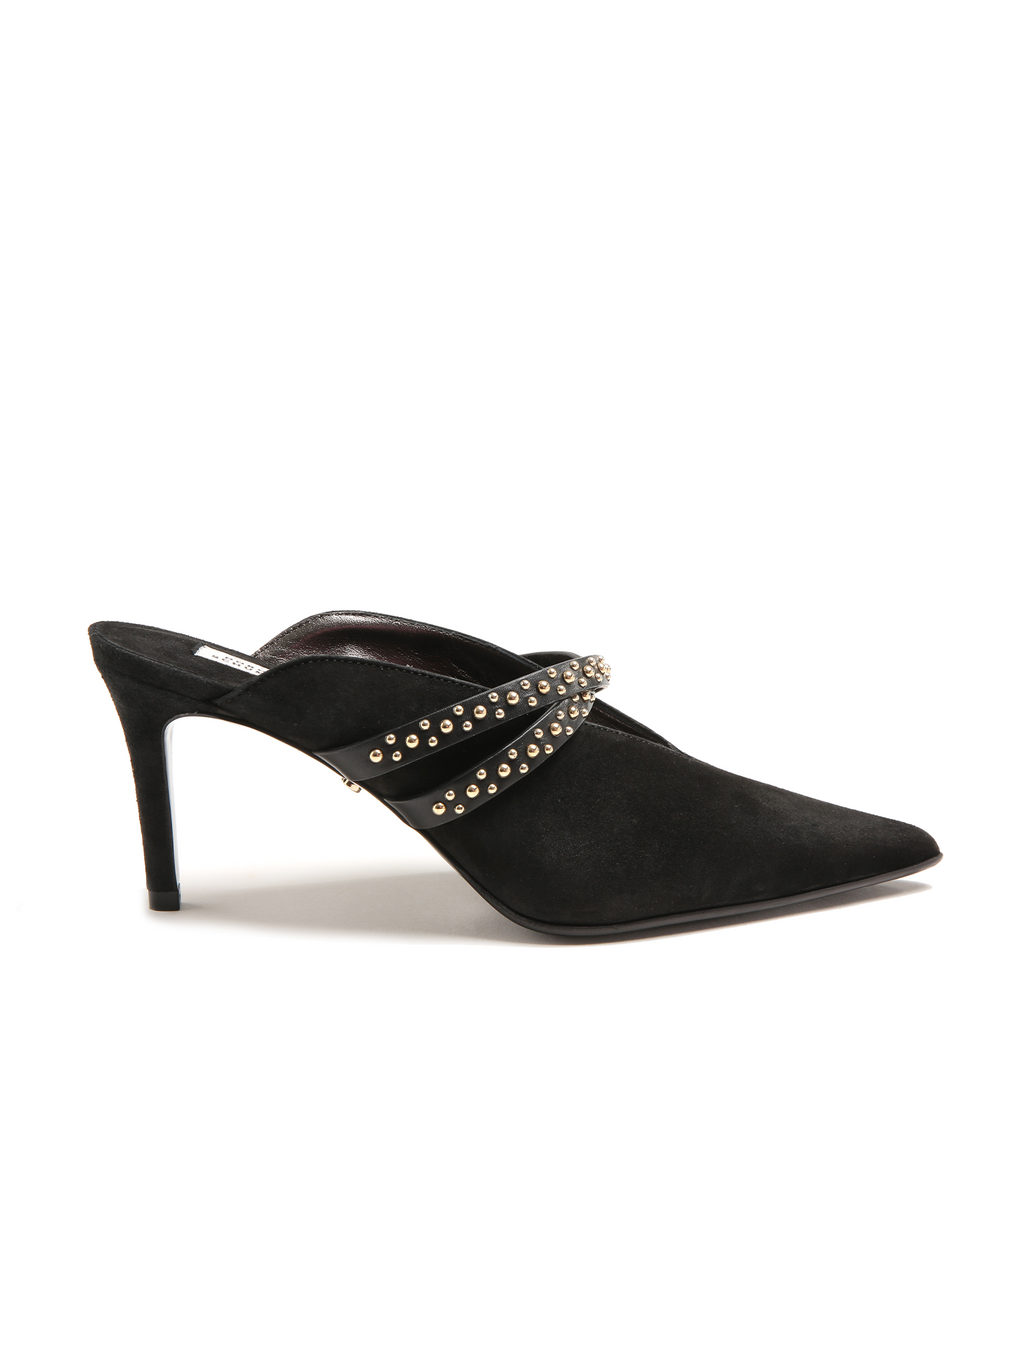 Dorothee Schumacher Simple Seduction Studded Pump